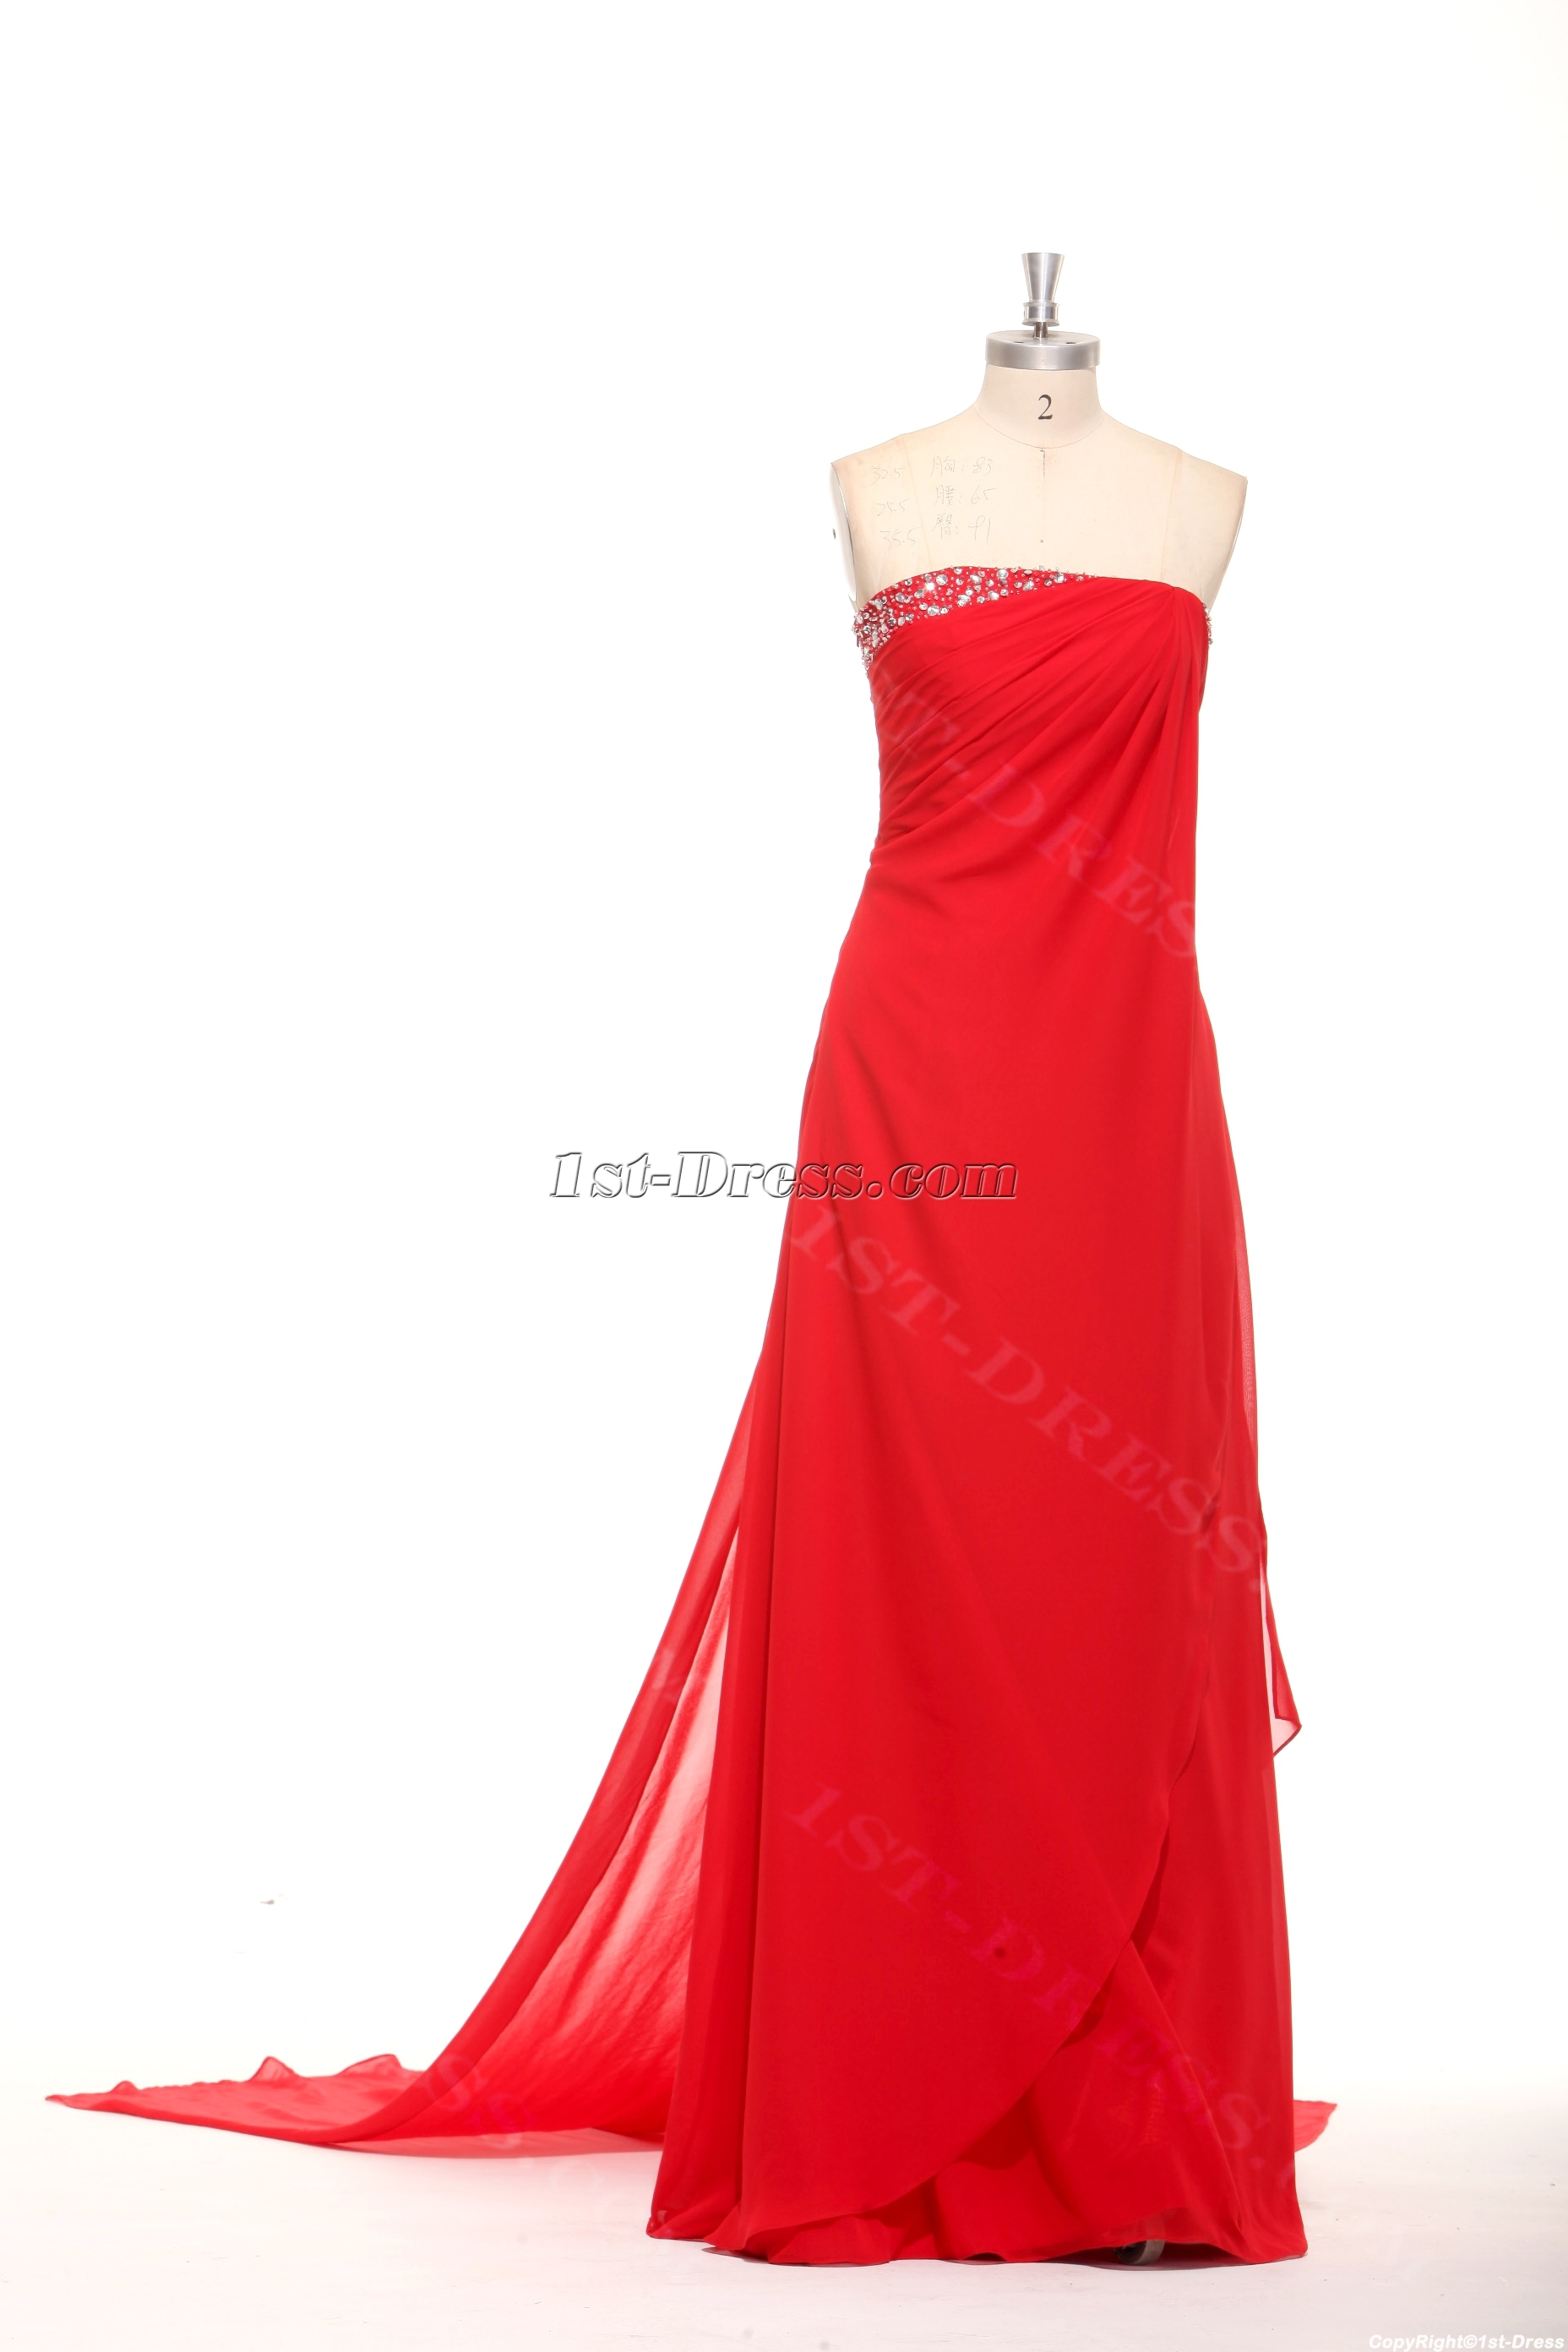 images/201309/big/Traditional-Red-Chiffon-Long-Prom-Dresses-for-Full-Figured-3038-b-1-1379847485.jpg